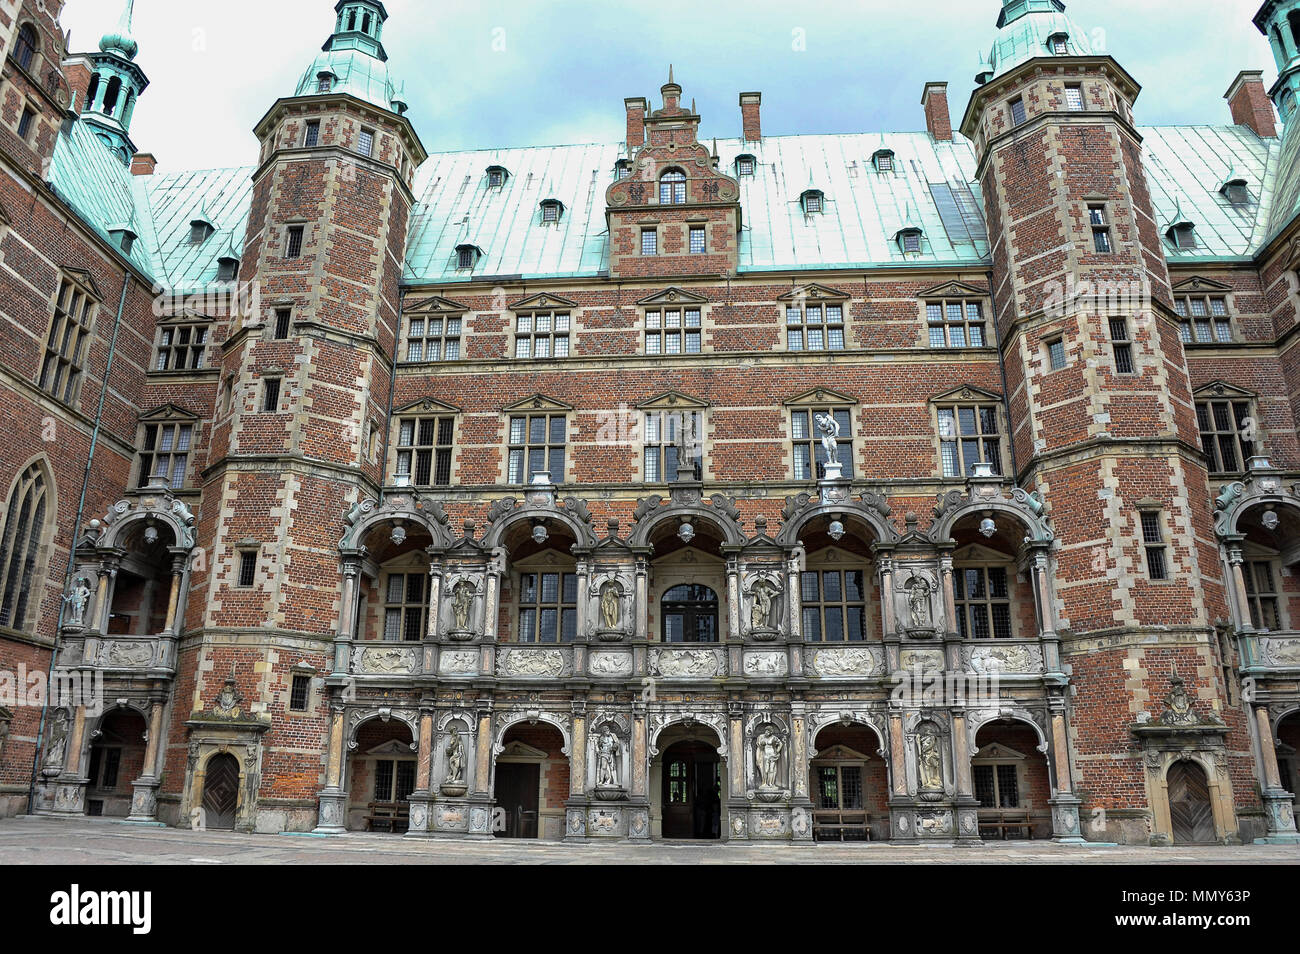 The inner courtyard, Frederiksborg  Castle, Hillerod, Denmark.  Red brick building, striking green towers and a stormy sky background - Stock Image